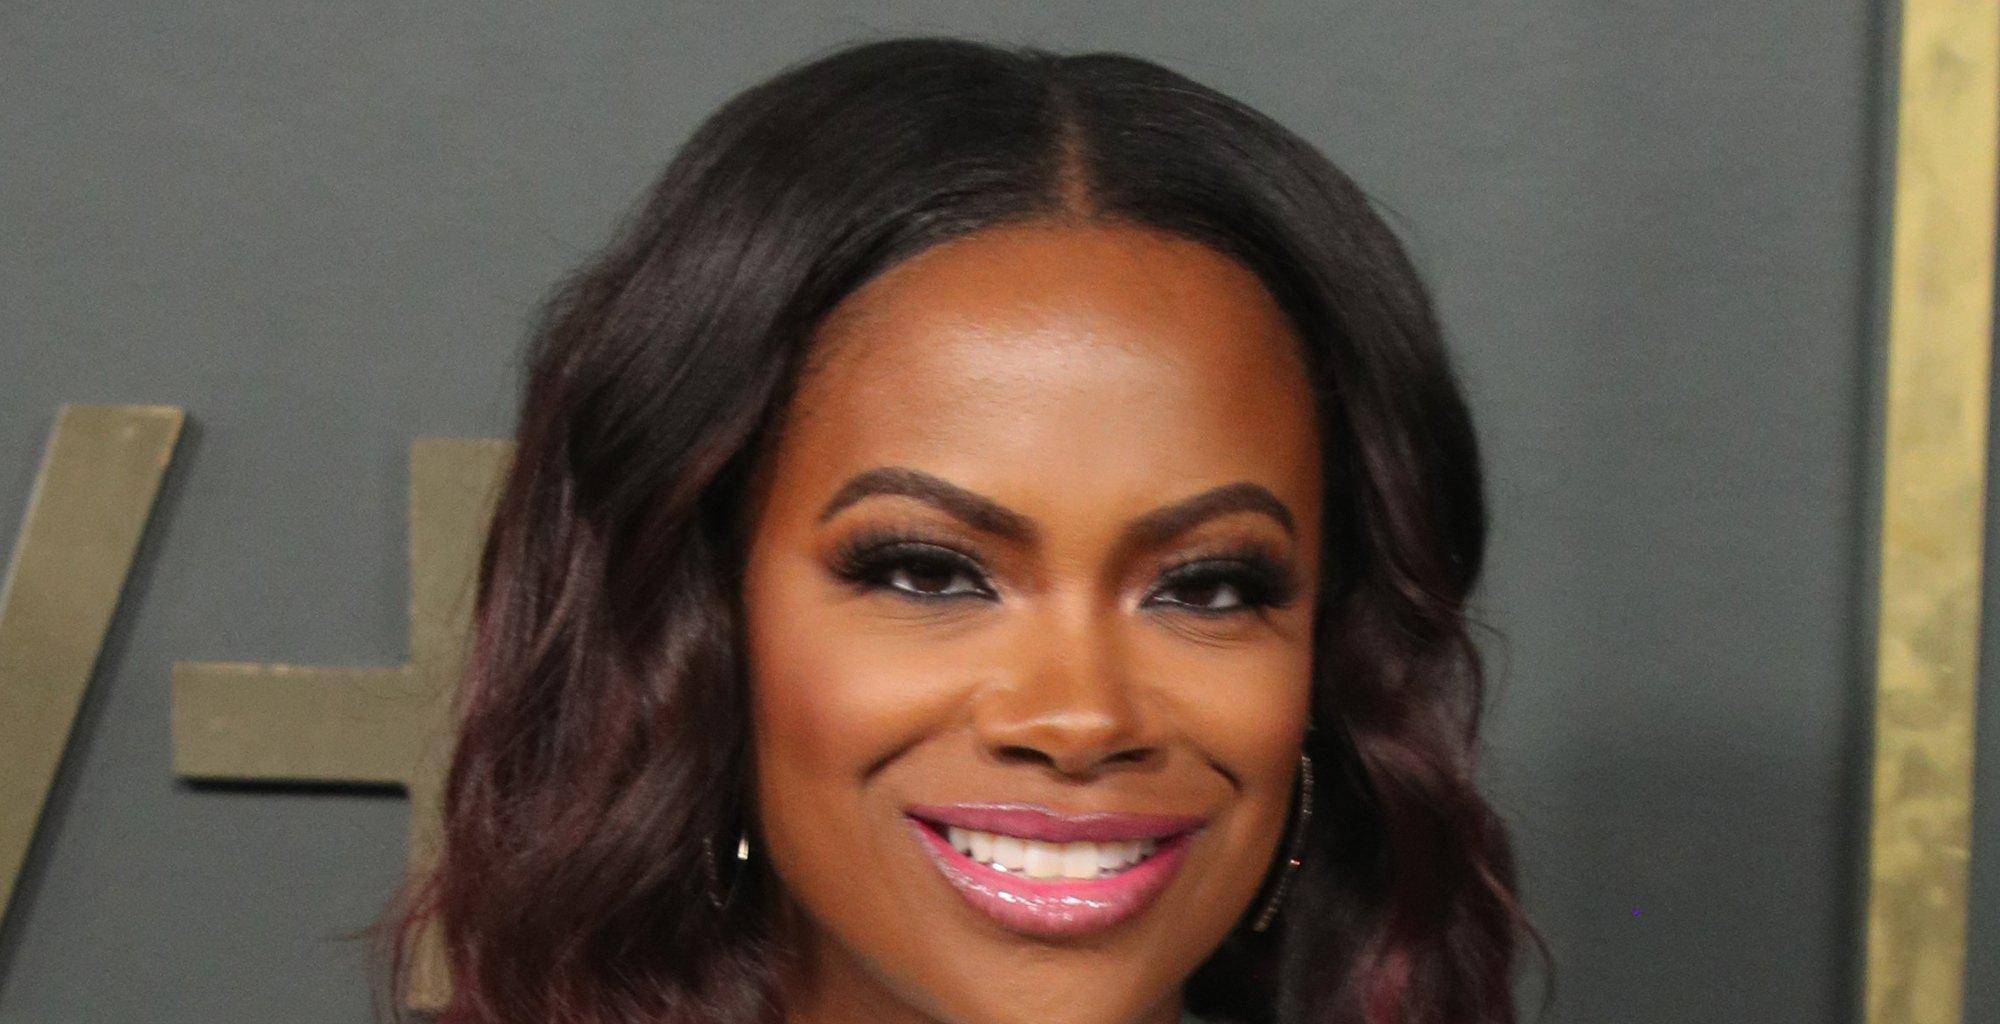 Kandi Burruss Wishes One Of Her BFFs A Happy Anniversary - See The Gorgeous Photos